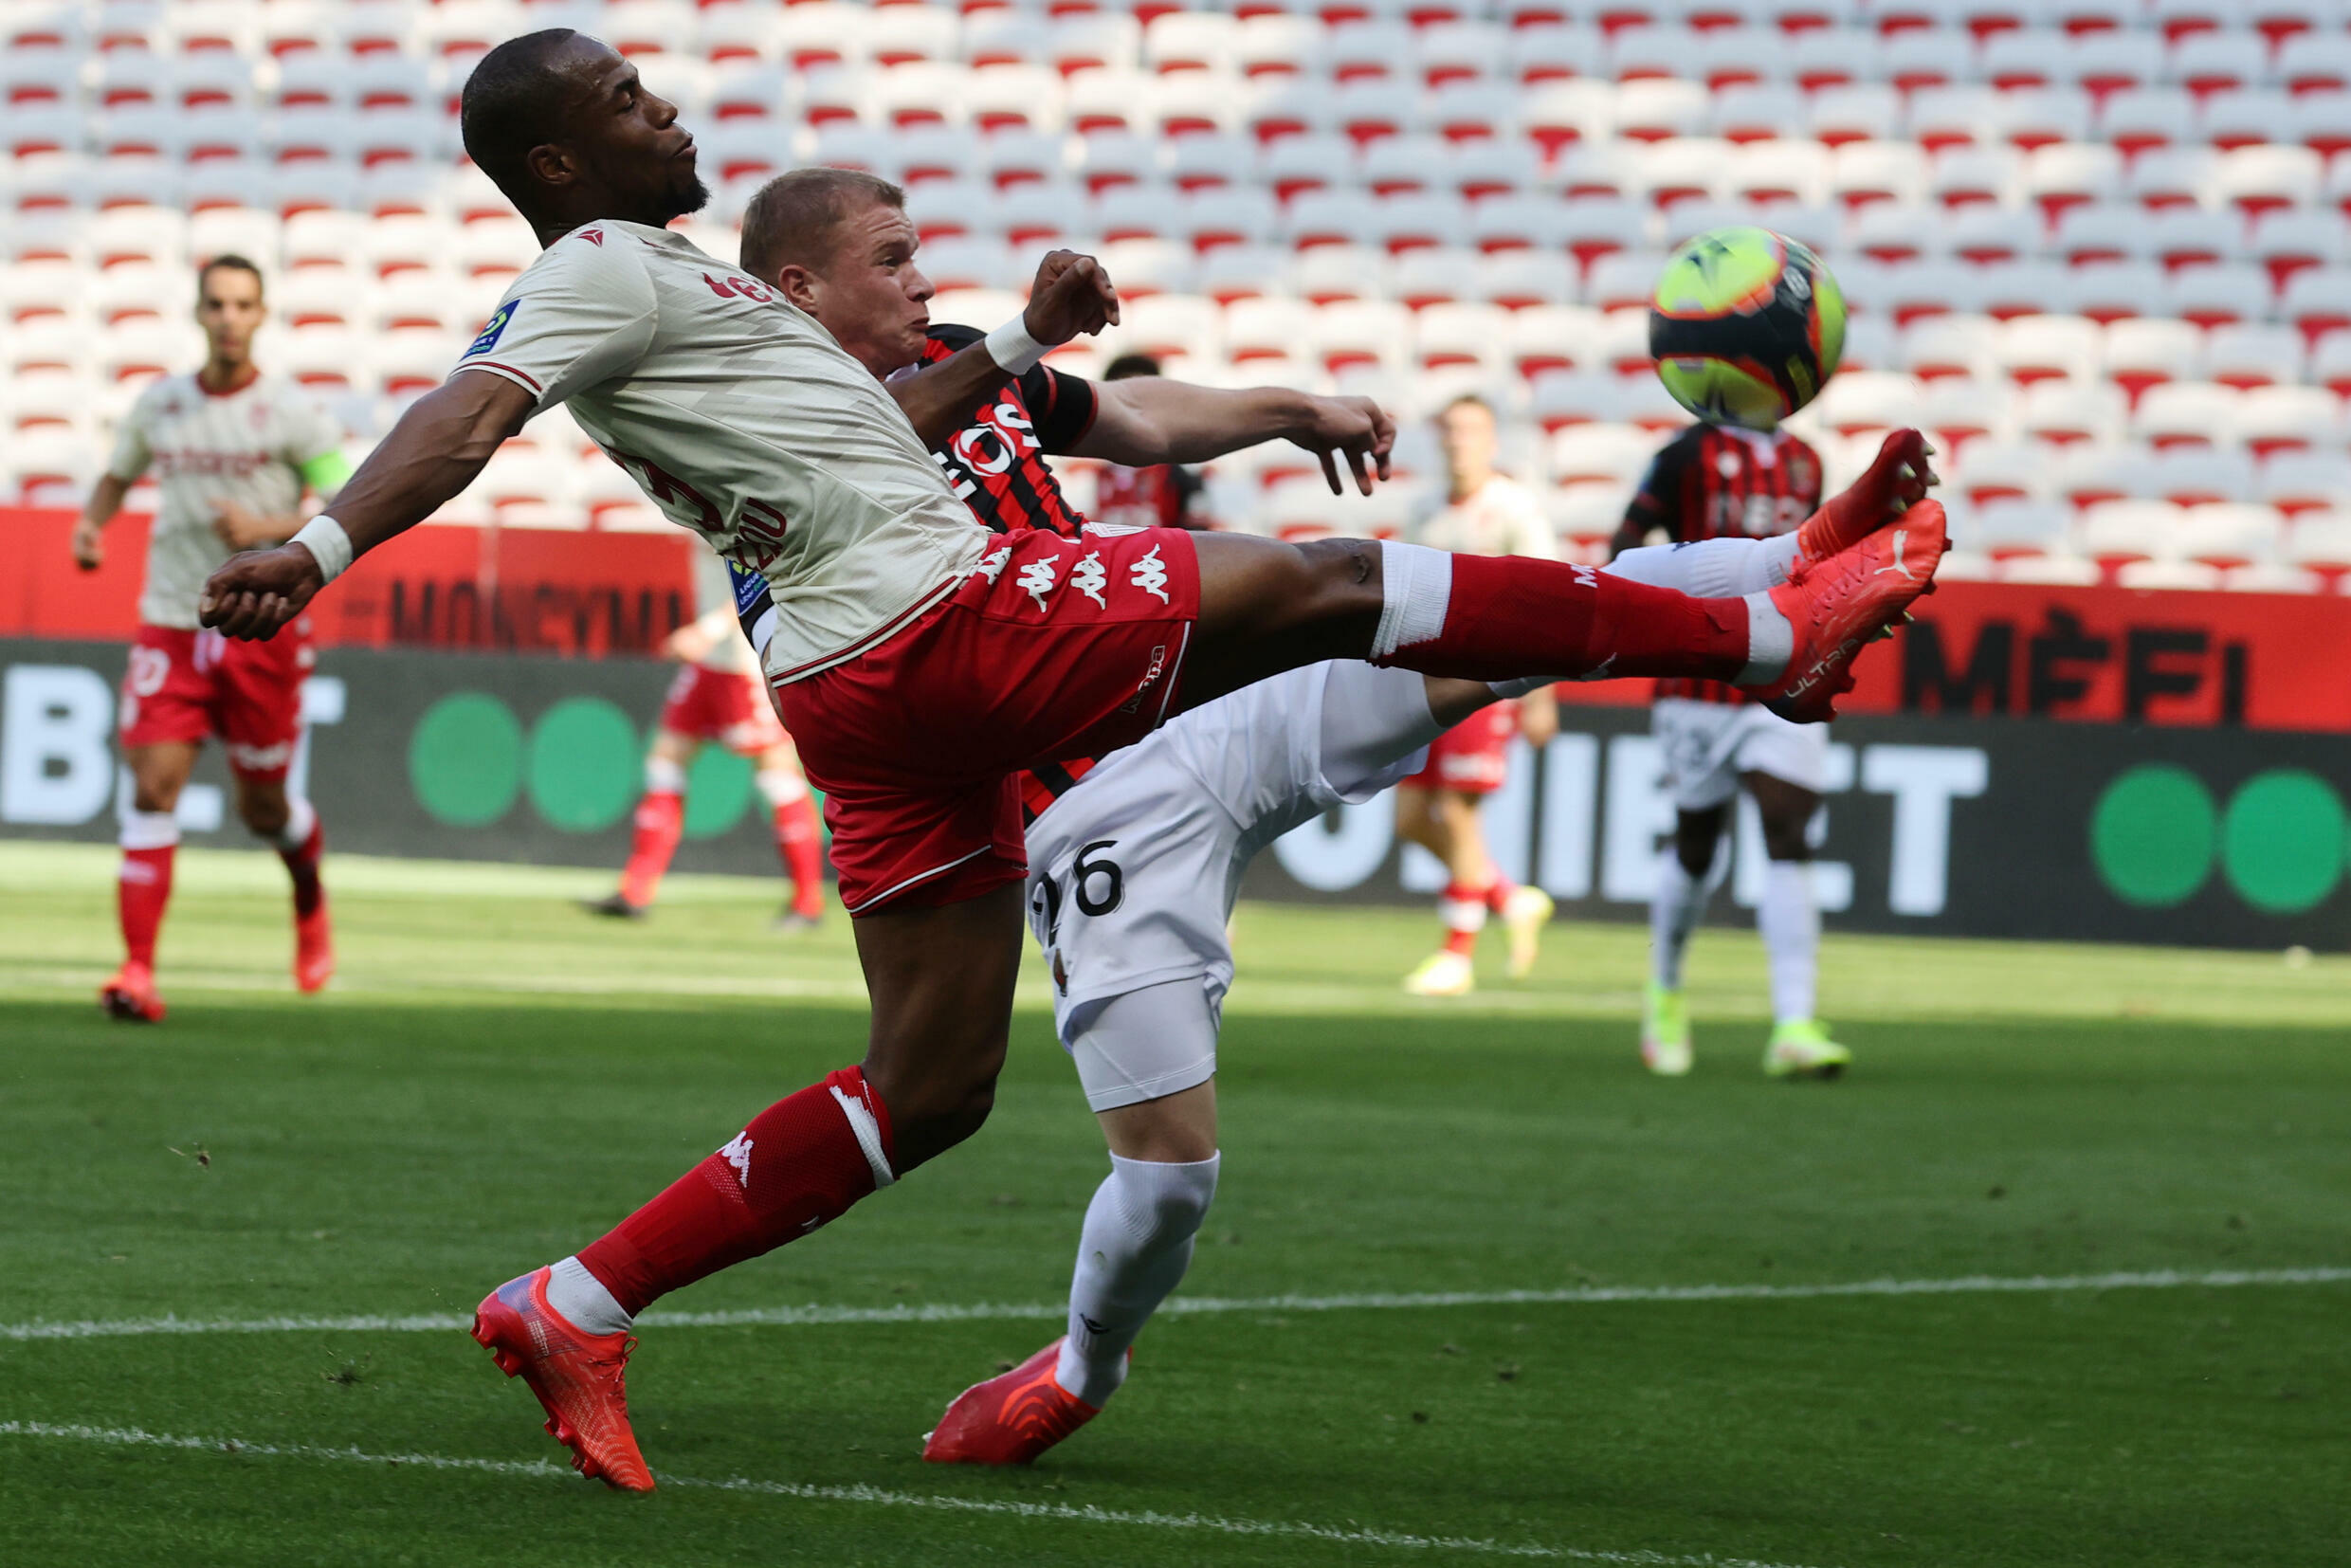 Monegasque defender Djibril Sidibé, wrestling with his Nice counterpart Melvin Bard, during their Ligue 1 match, on September 19, 2021 at the Allianz Riviera Stadium